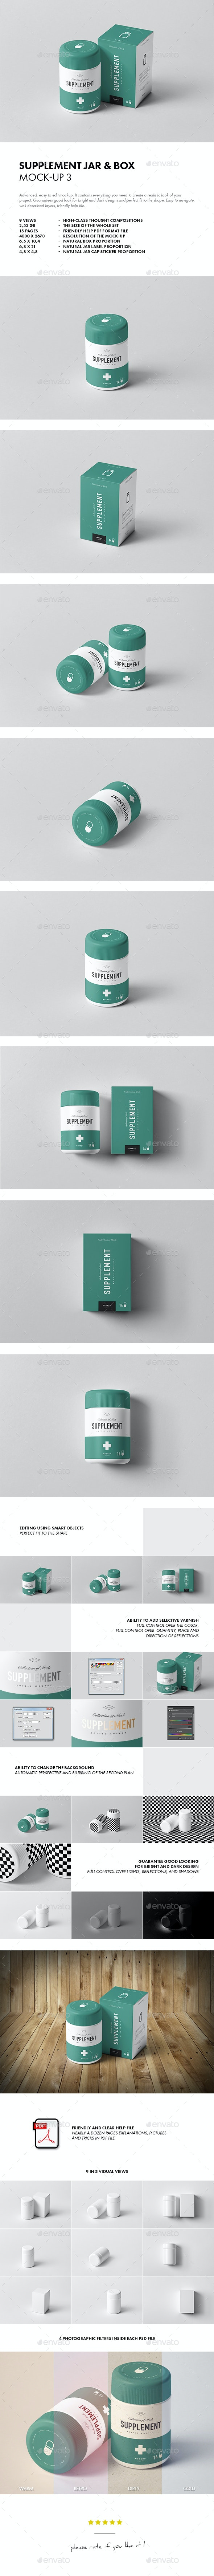 Supplement Jar & Box Mock-Up 3 - Miscellaneous Packaging